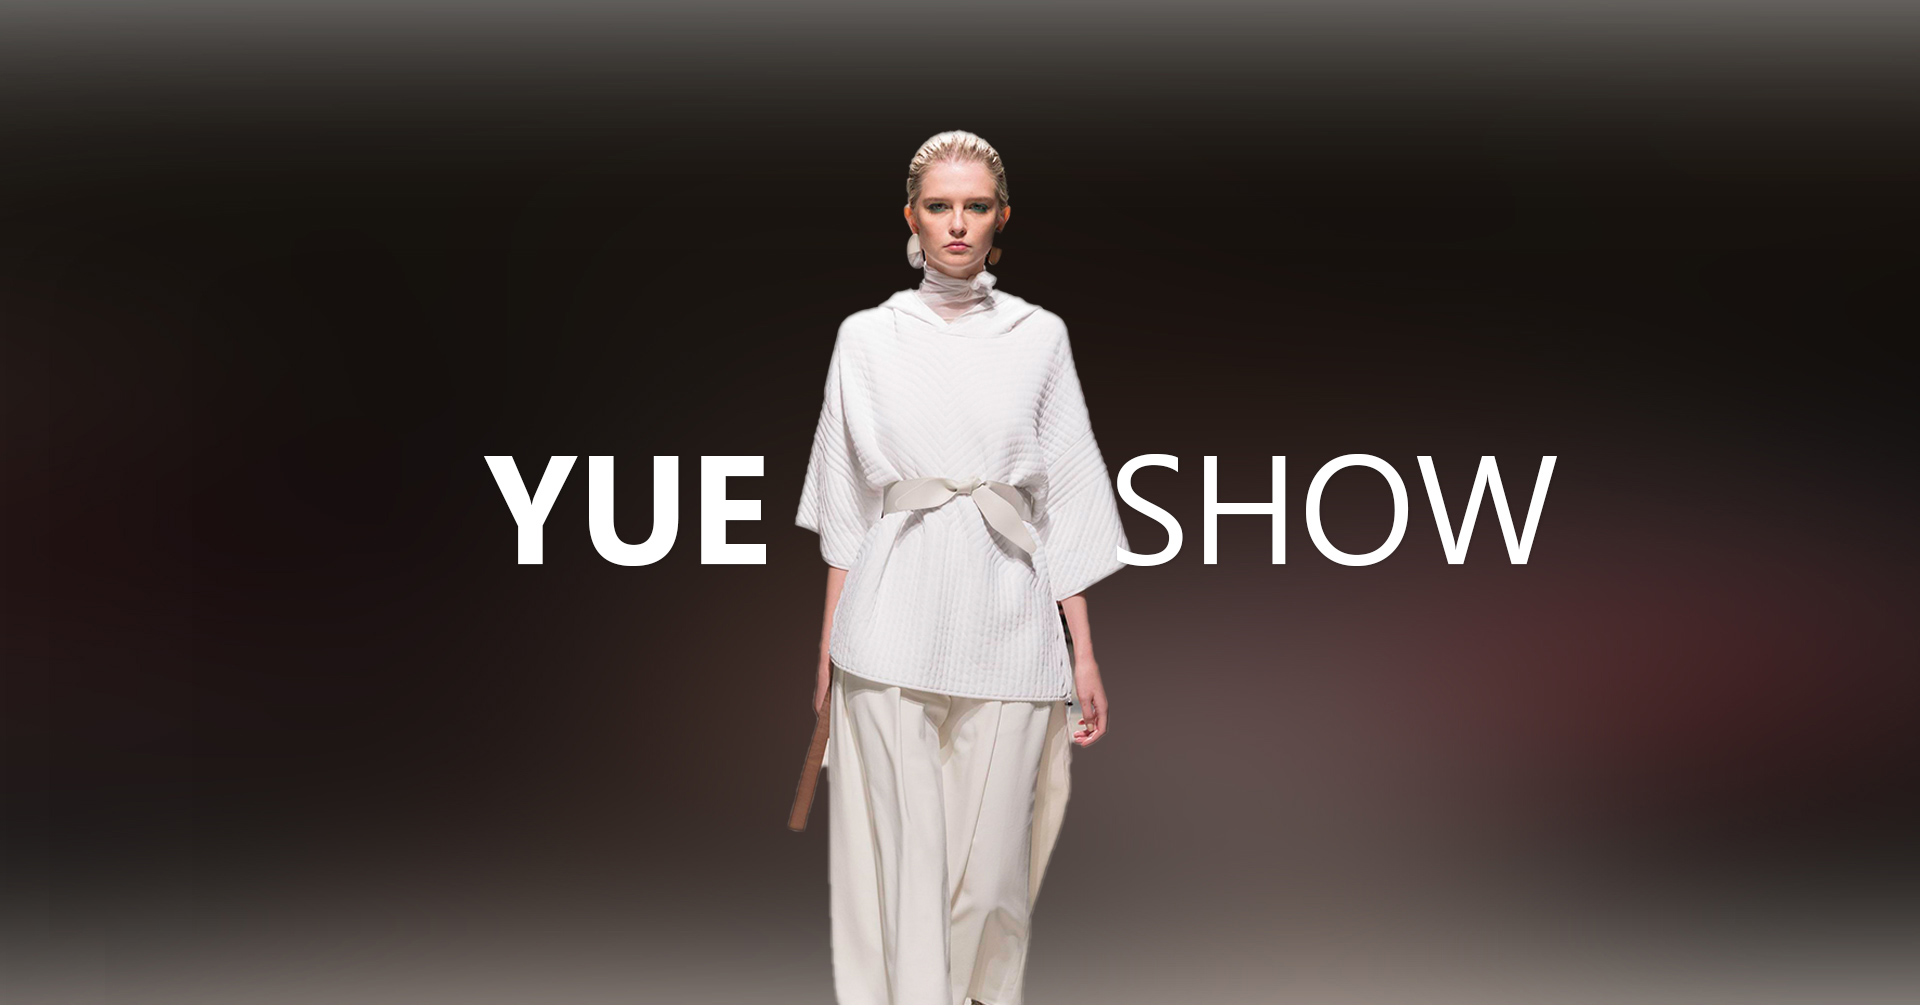 YUE SHOW